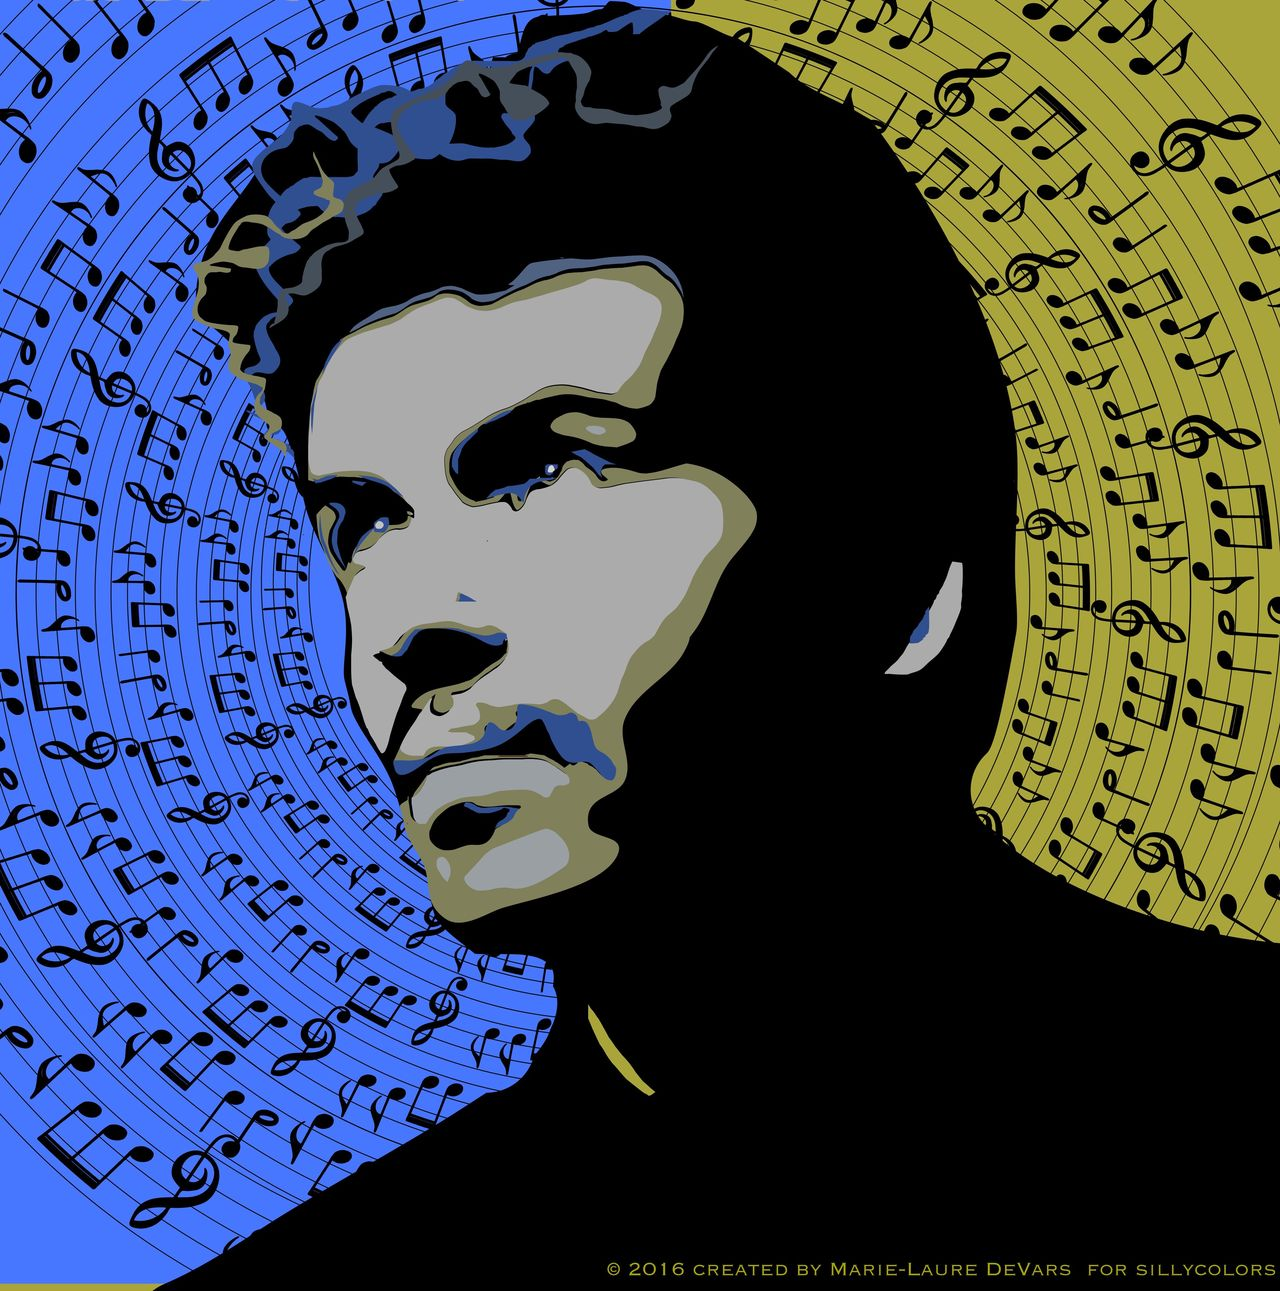 Georgemichael George Michael Illustrationart Digital Painting Sillycolors Silly Colors Vibrant Color Digital Art Digital Drawing Minimalism